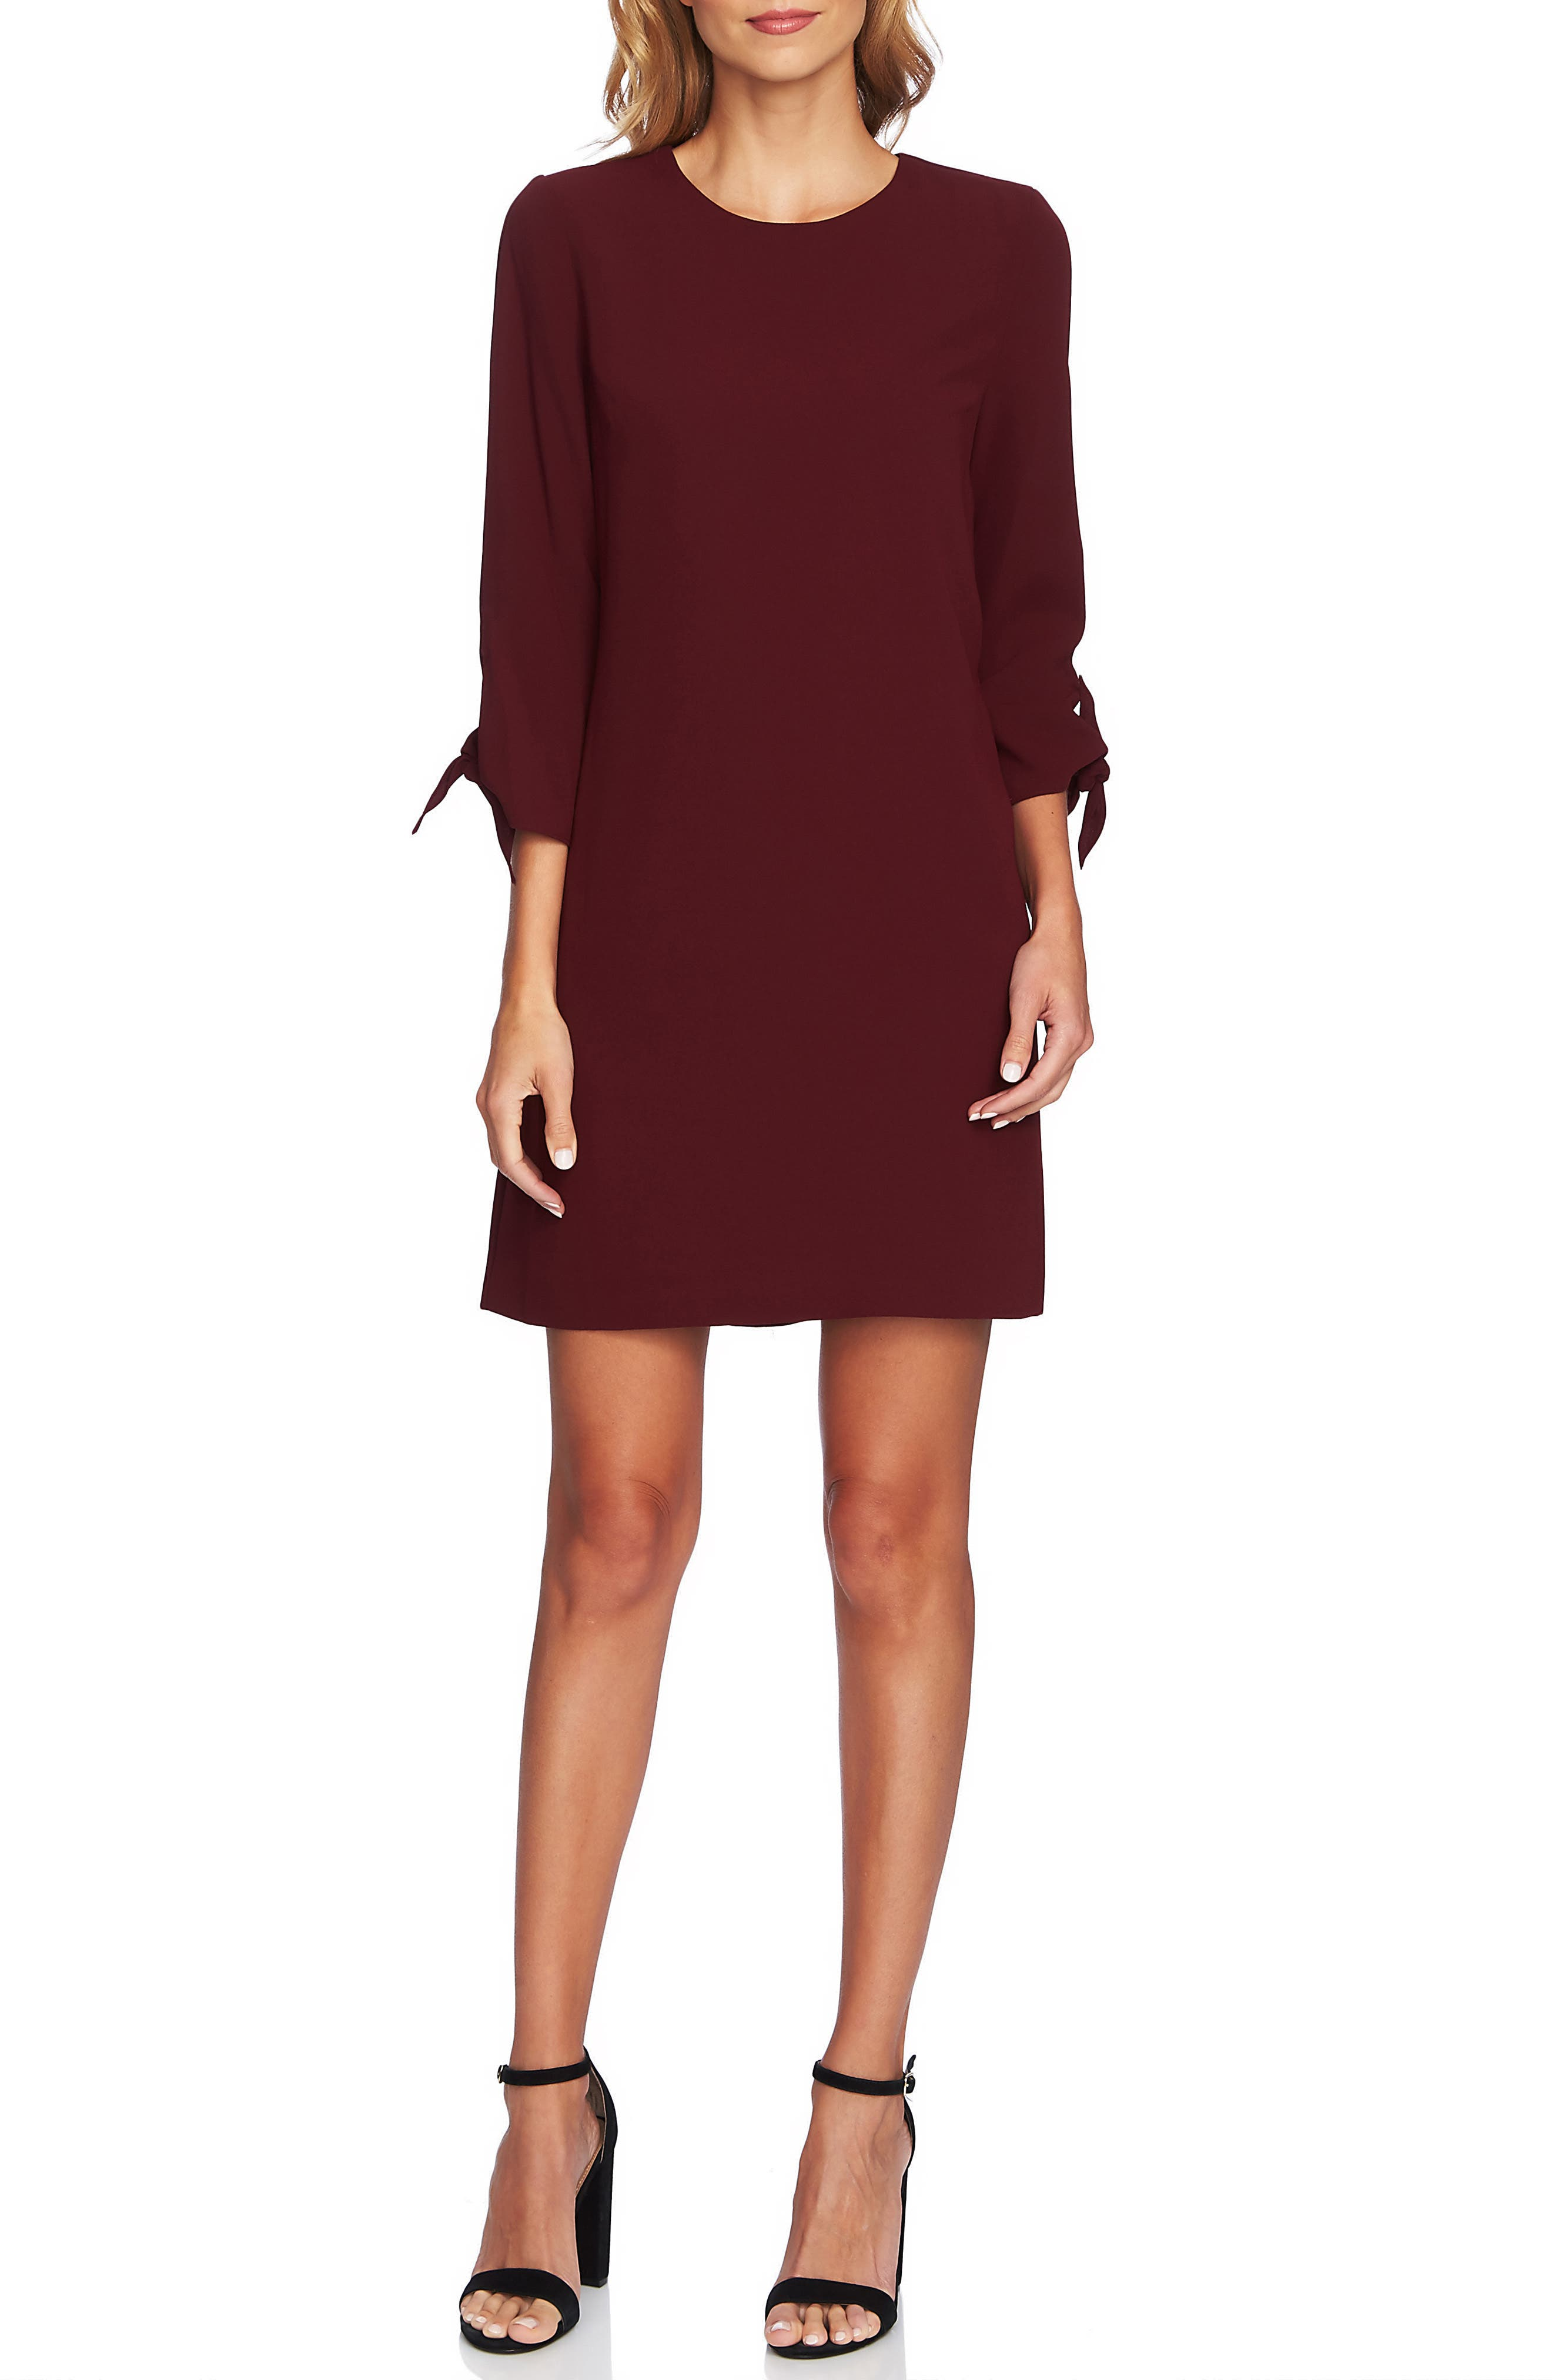 Cece Tie Sleeve Shift Dress, Burgundy